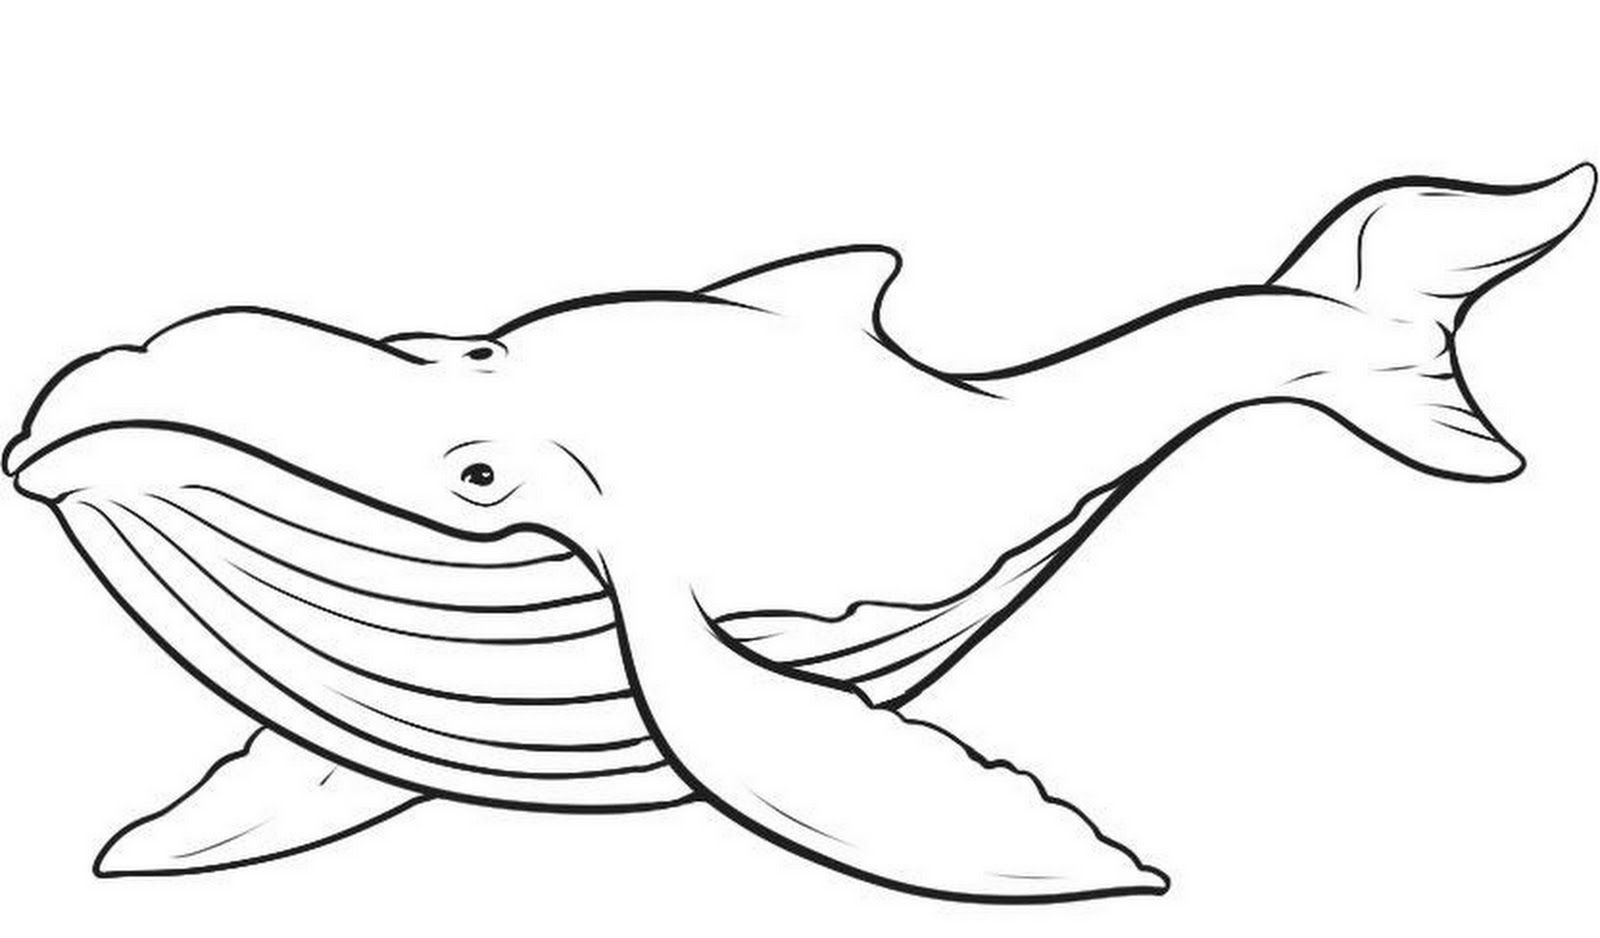 Whale Coloring Pages 3 Animal Coloring Pages Whale Coloring